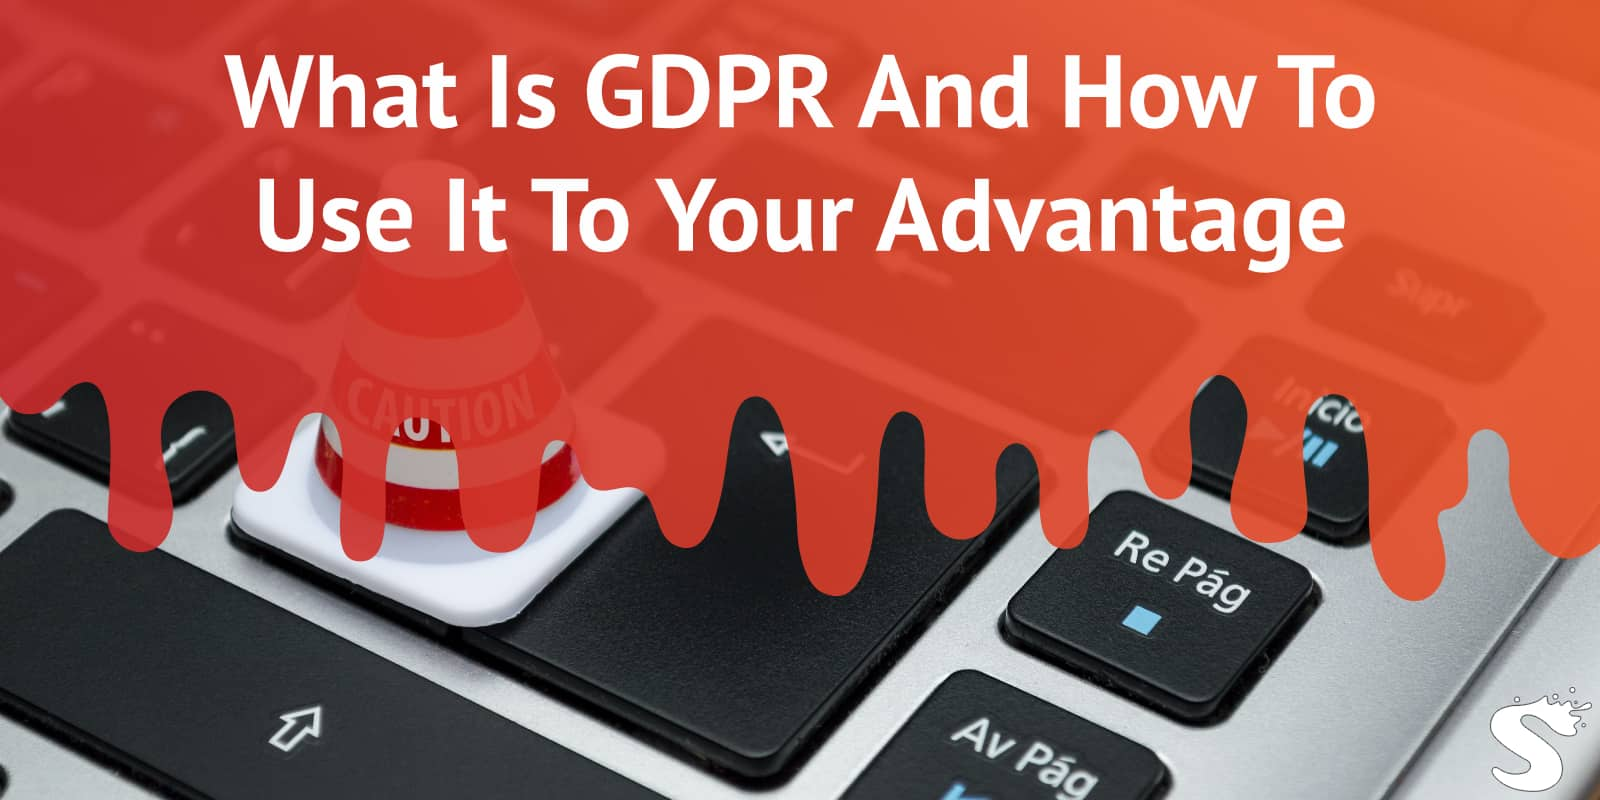 How to Use GDPR to your Advantage